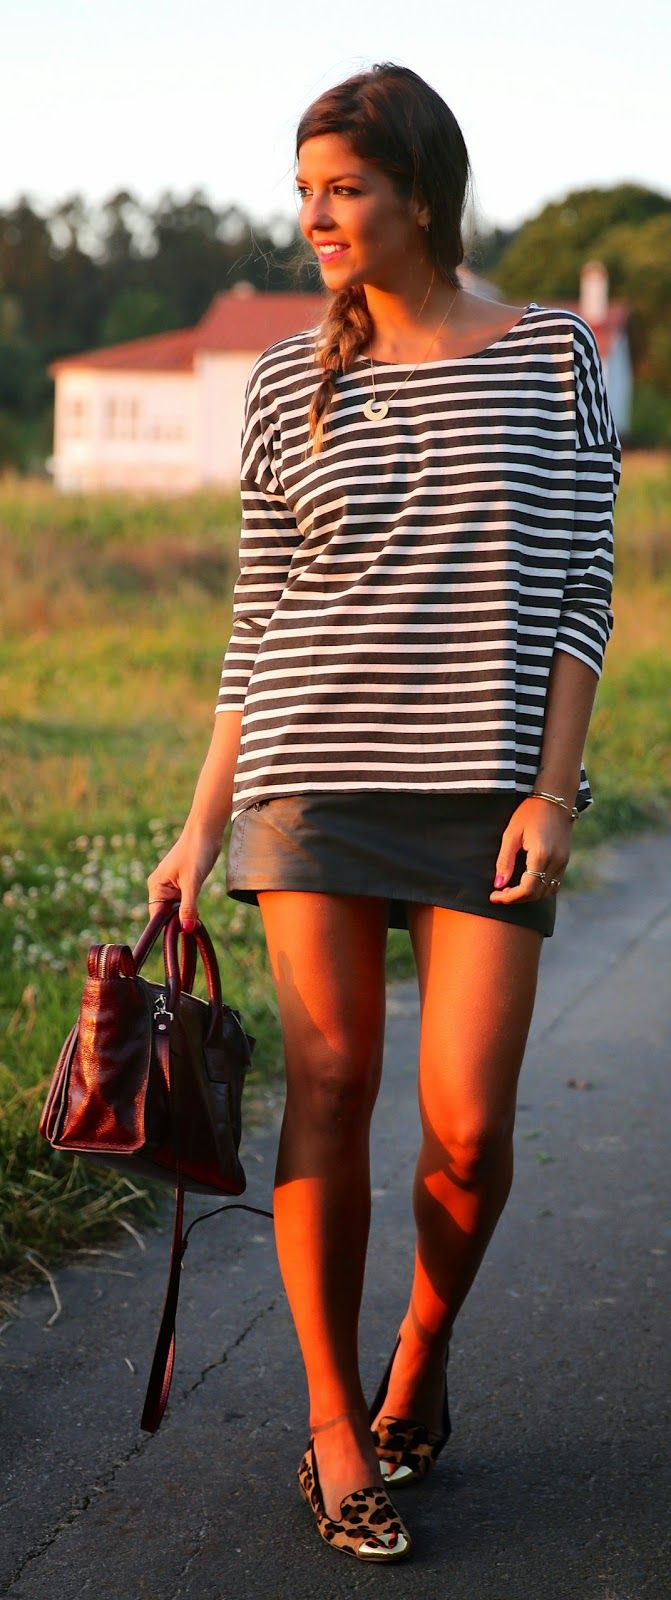 Everyday New Fashion: Leather And Stripes by TrendyTaste